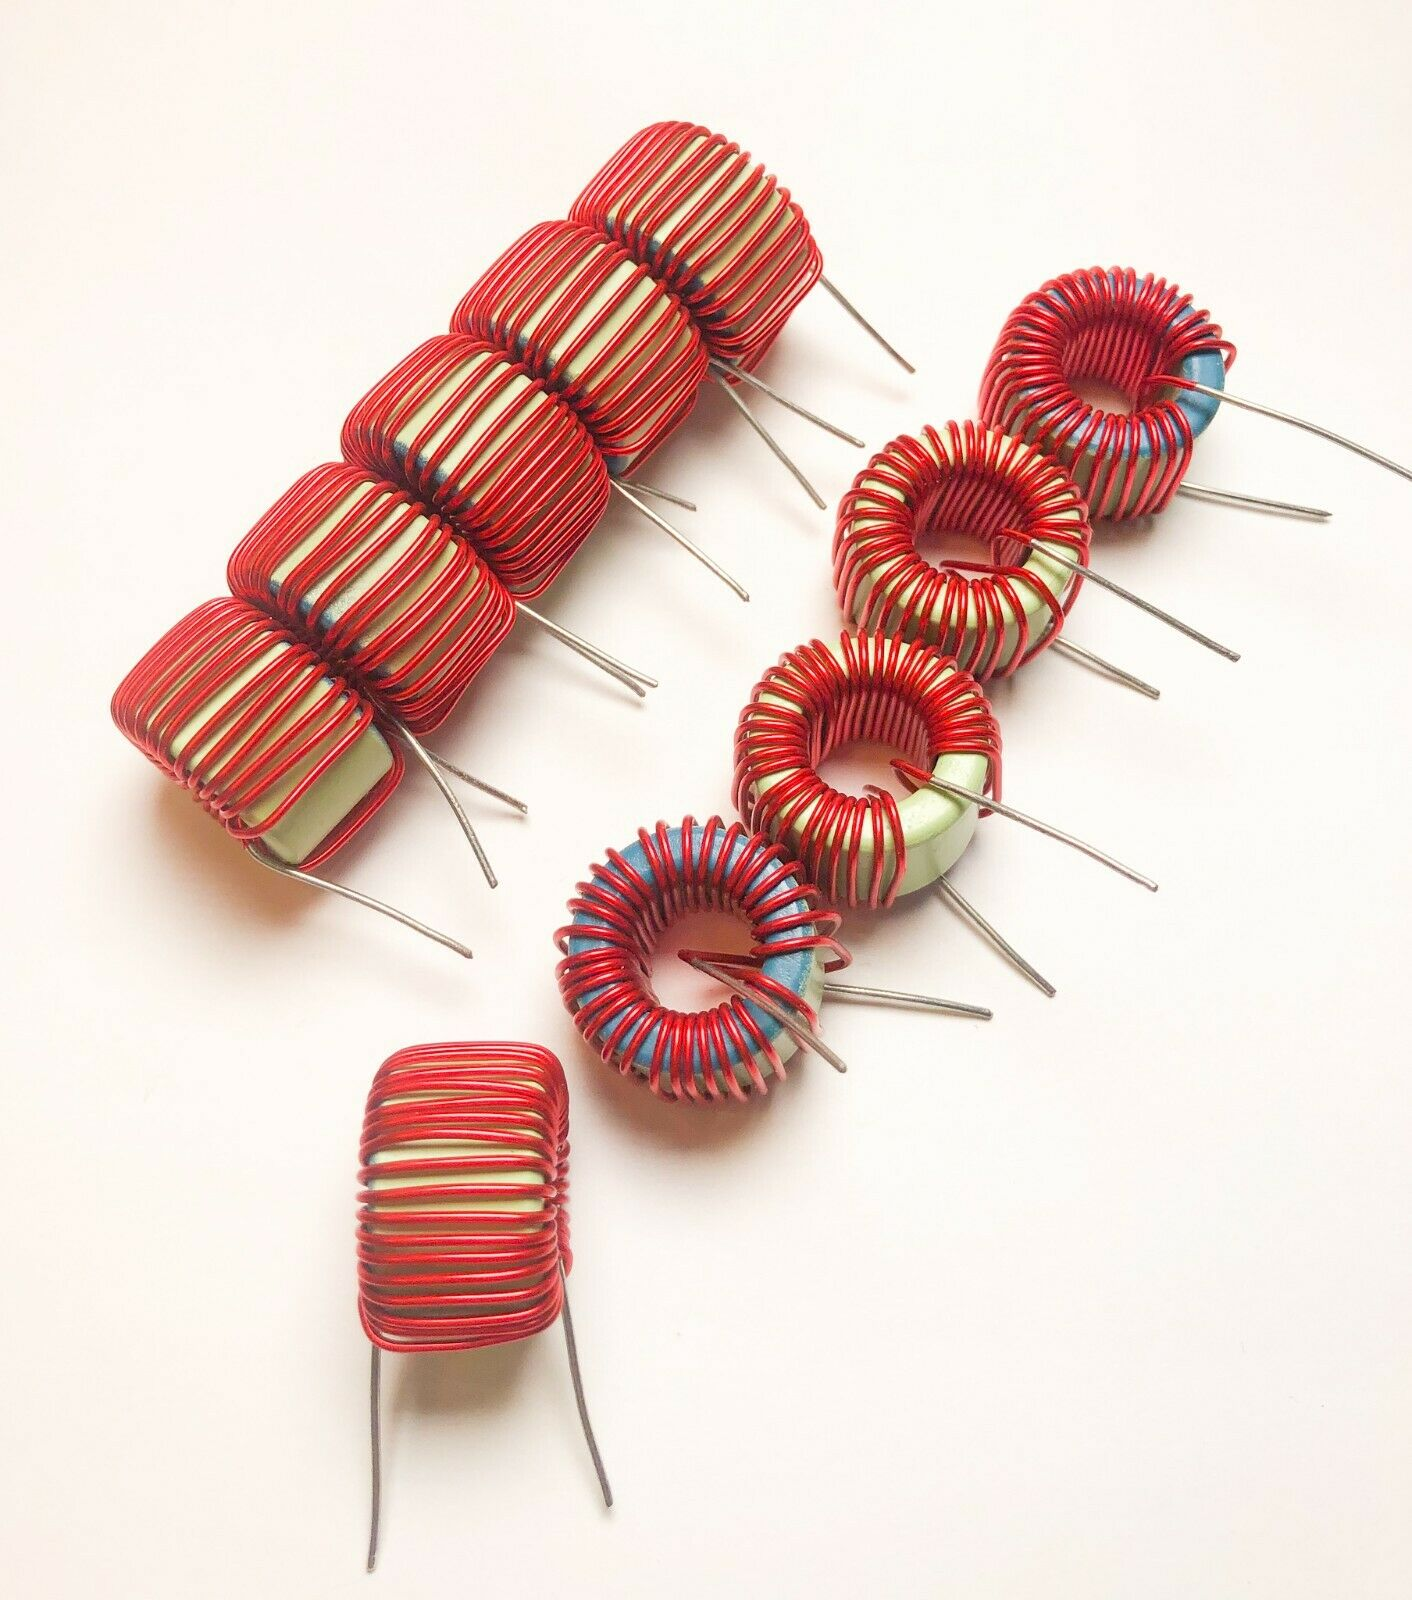 Fixed Inductors 68uH 20/% RF CHOKE High Current 50 pieces